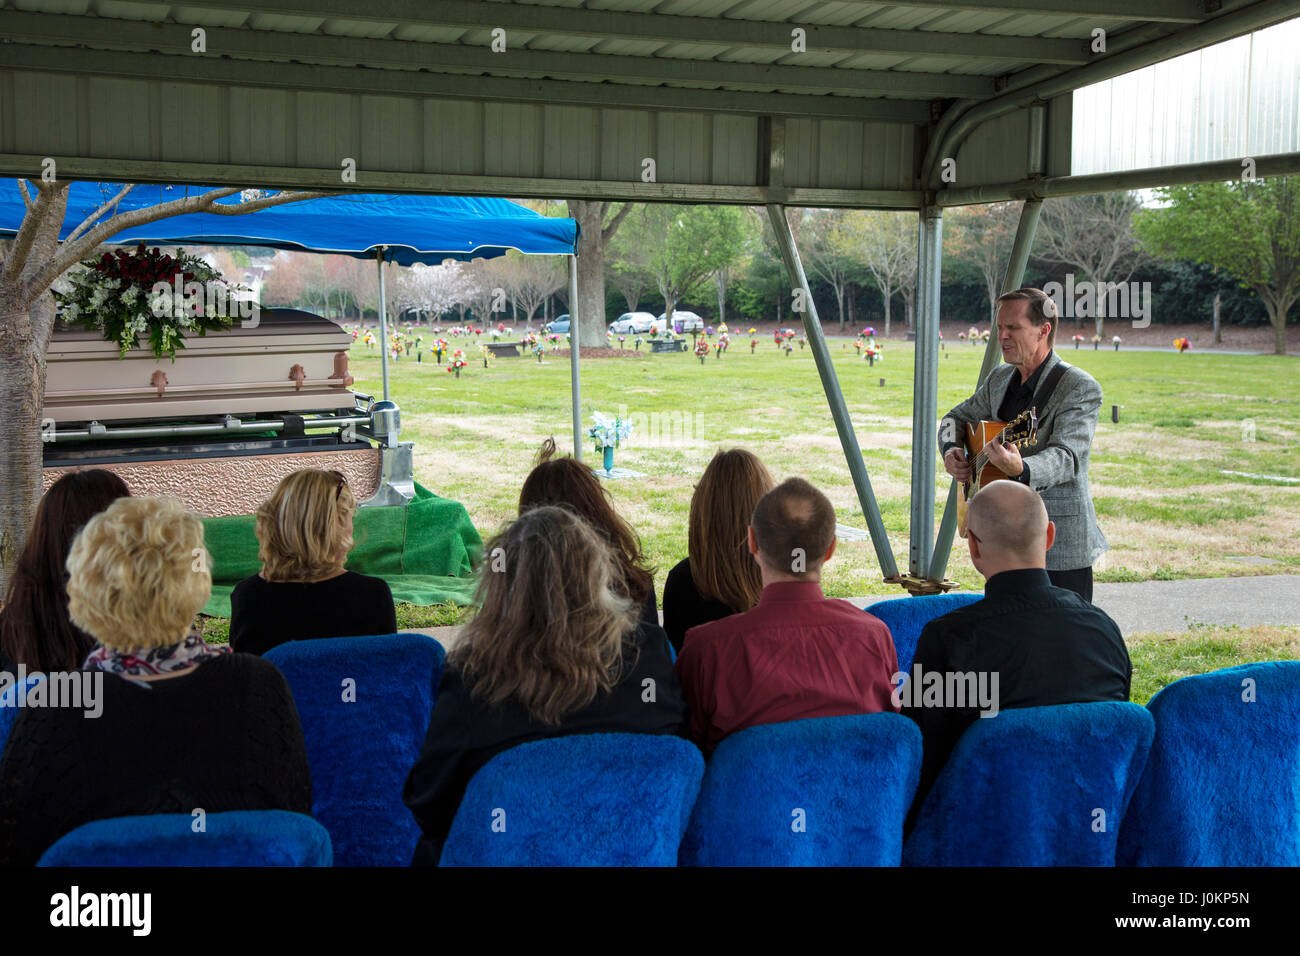 Artist sings at family graveside service for loved one, Hendersonville, Tennessee, USA - Stock Image